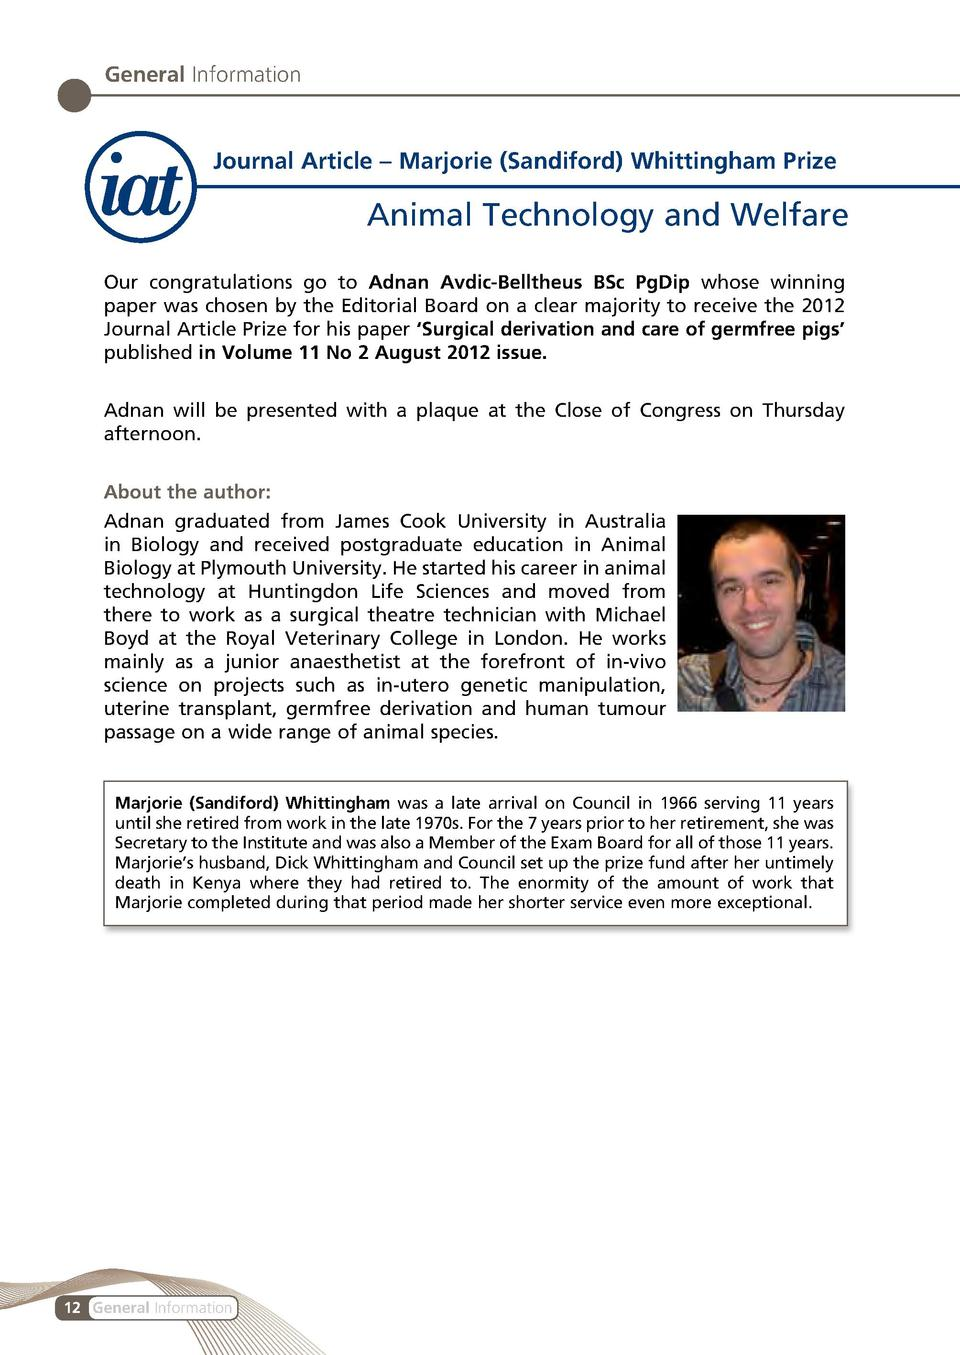 General Information  Journal Article     Marjorie  Sandiford  Whittingham Prize  Animal Technology and Welfare Our congrat...